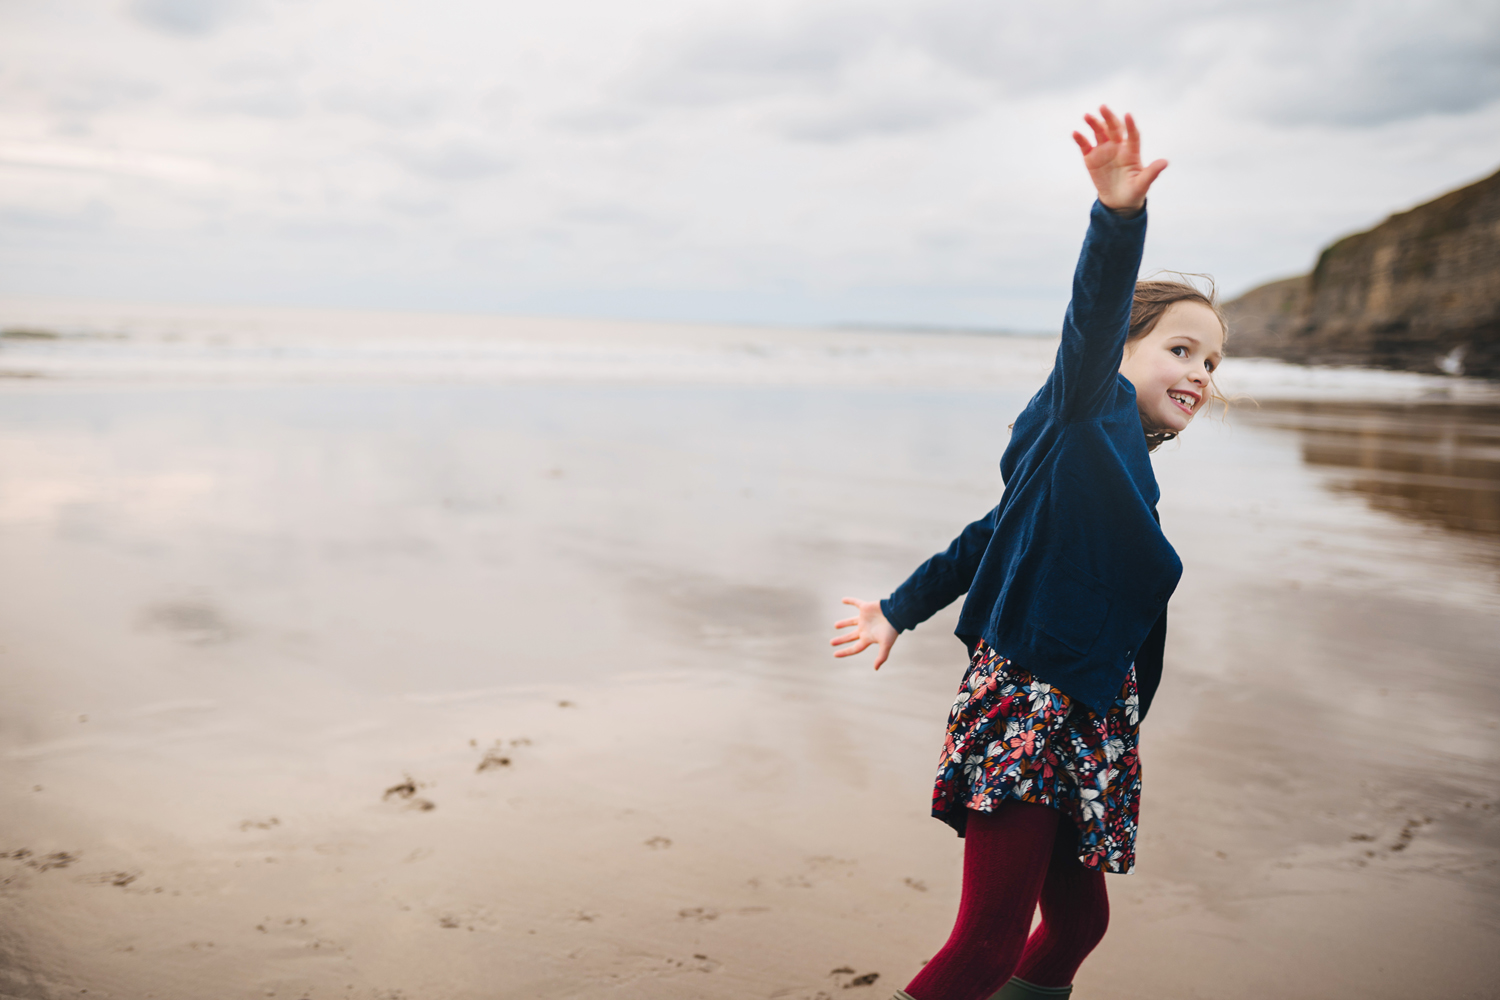 child running on the beach with outstretched arms